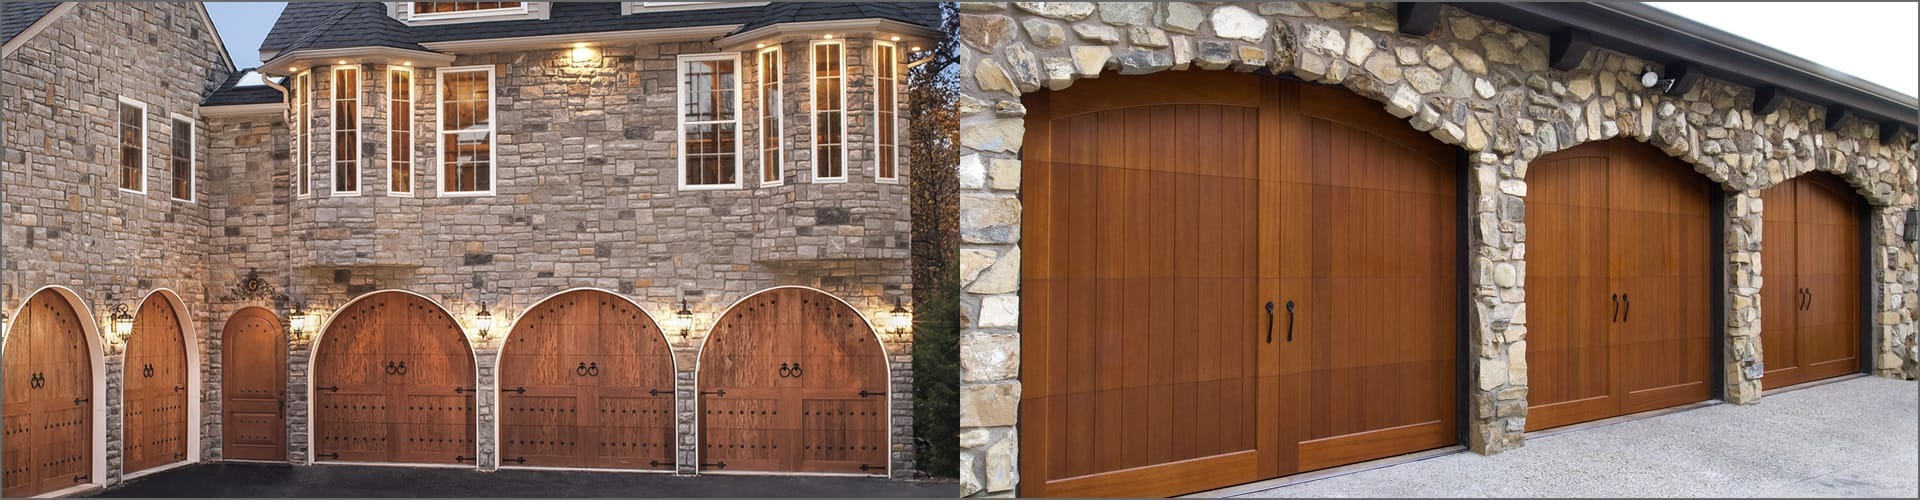 Carriage House Garage Doors Serving The Bay Area